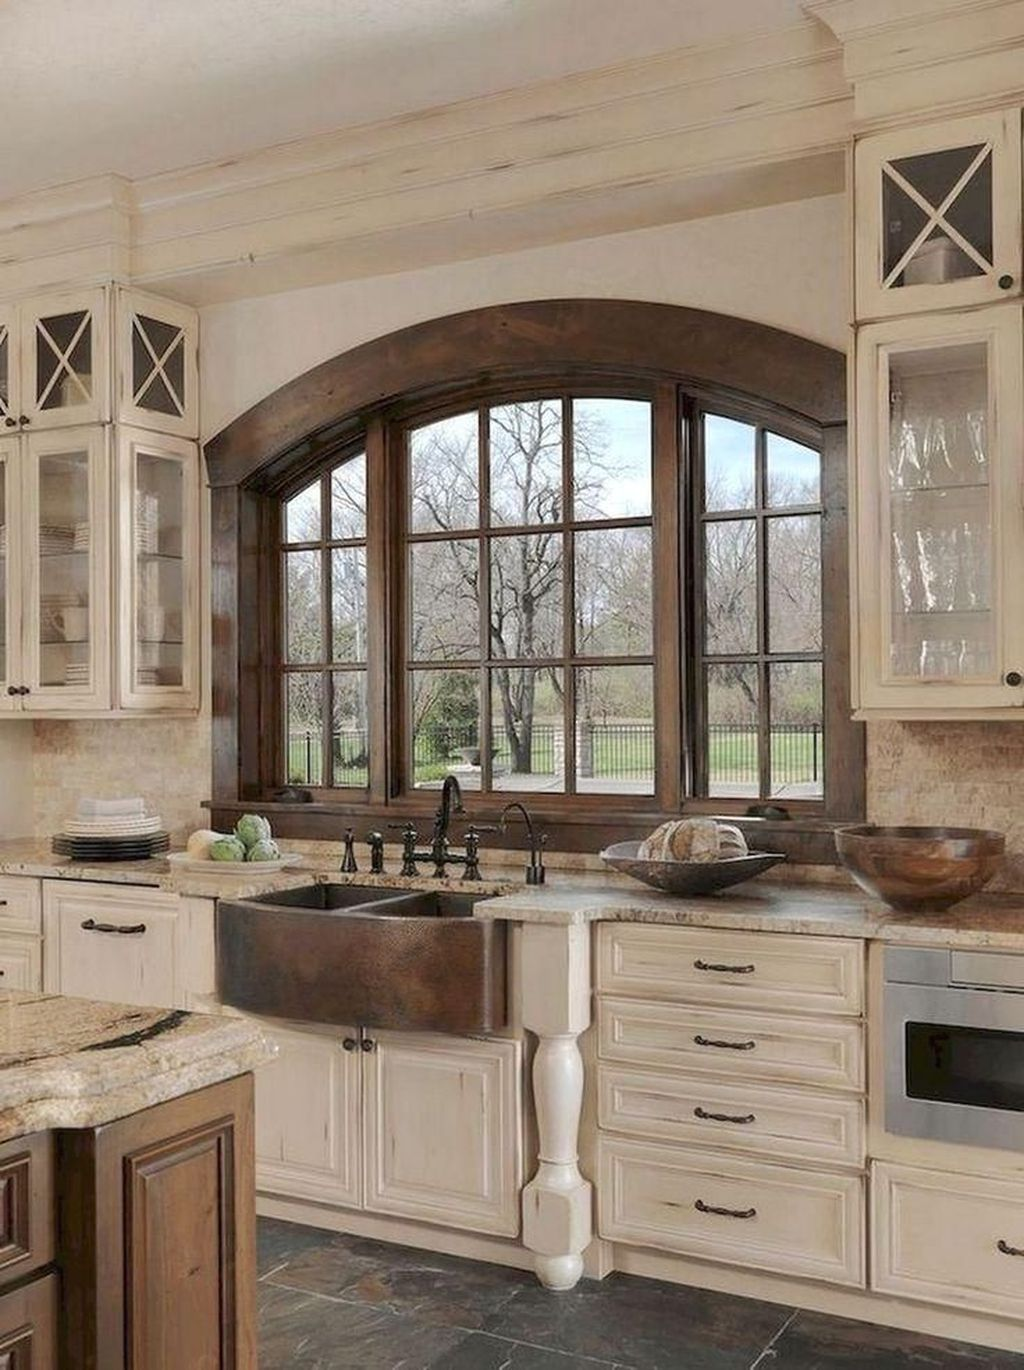 The Best Modern Farmhouse Kitchen Design Ideas 18